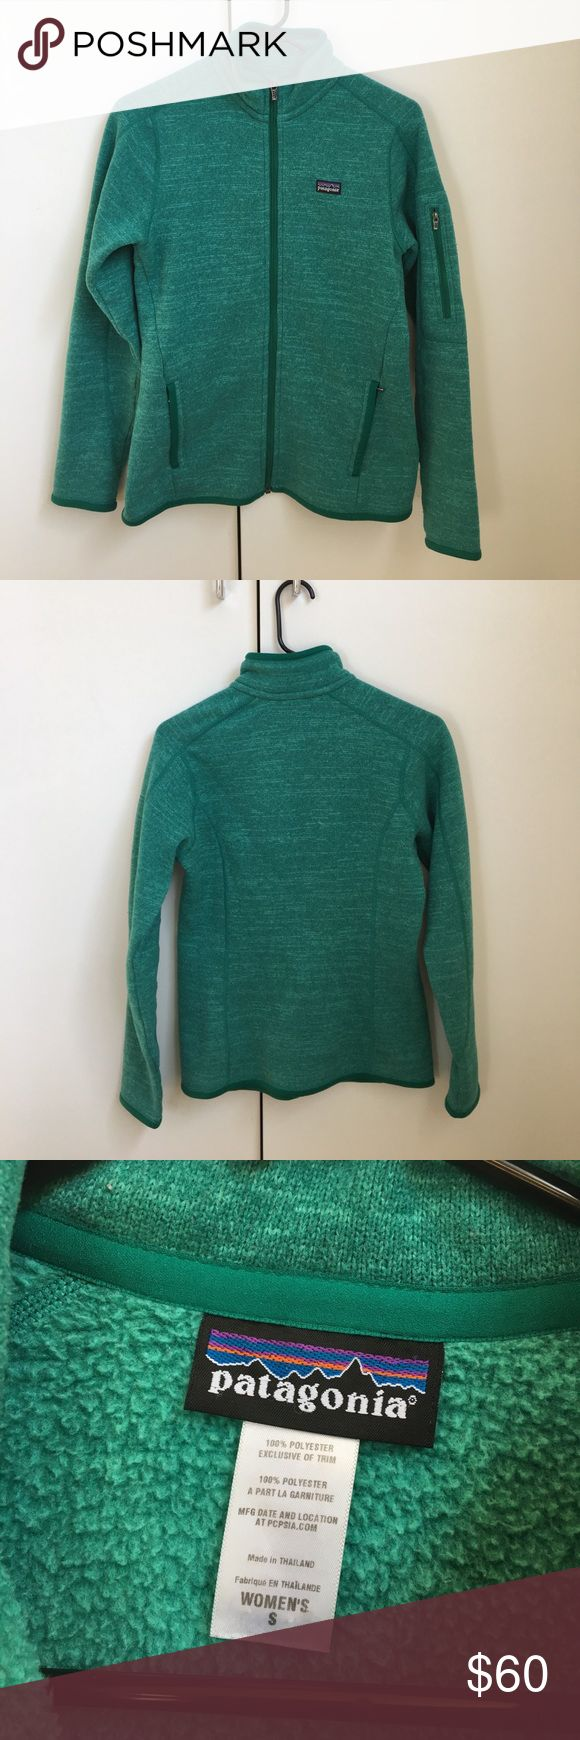 Green Patagonia sweater zip up Size small green women's patagonia sweater zip up Patagonia Jackets & Coats